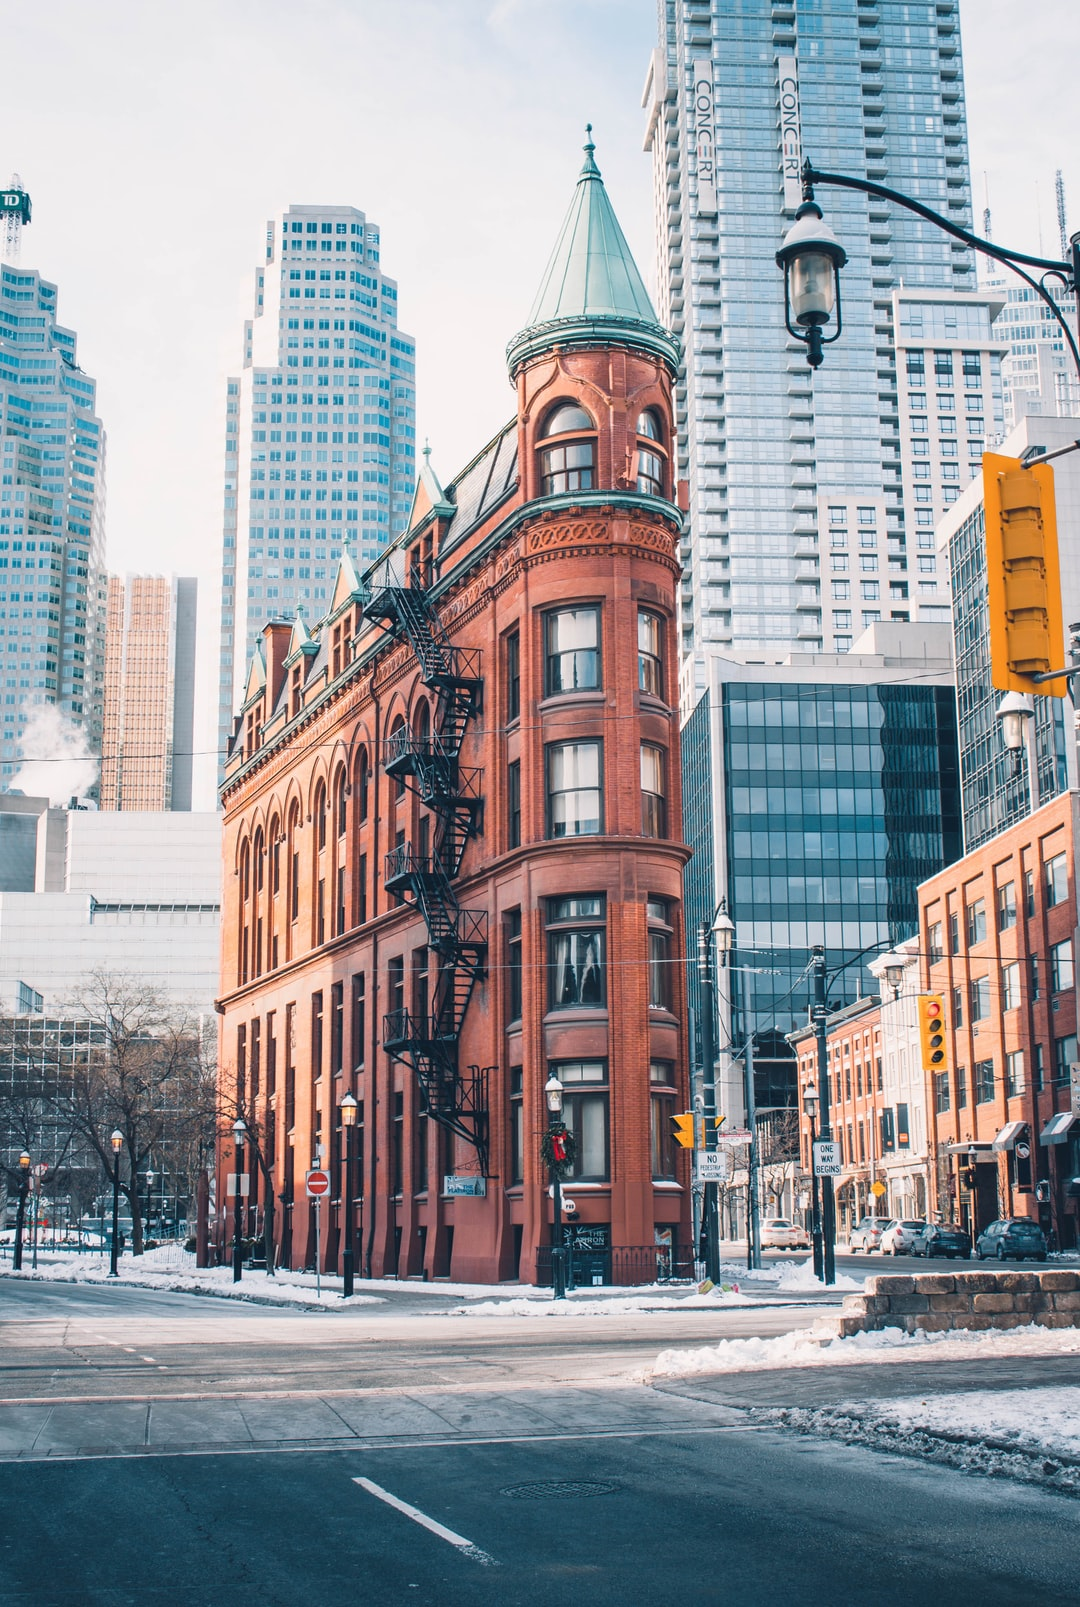 Historical Landmark in Toronto, the Flatiron building stands and is seen by many each day. This weekend, I found my way into the Greater Toronto Area to capture this photo.